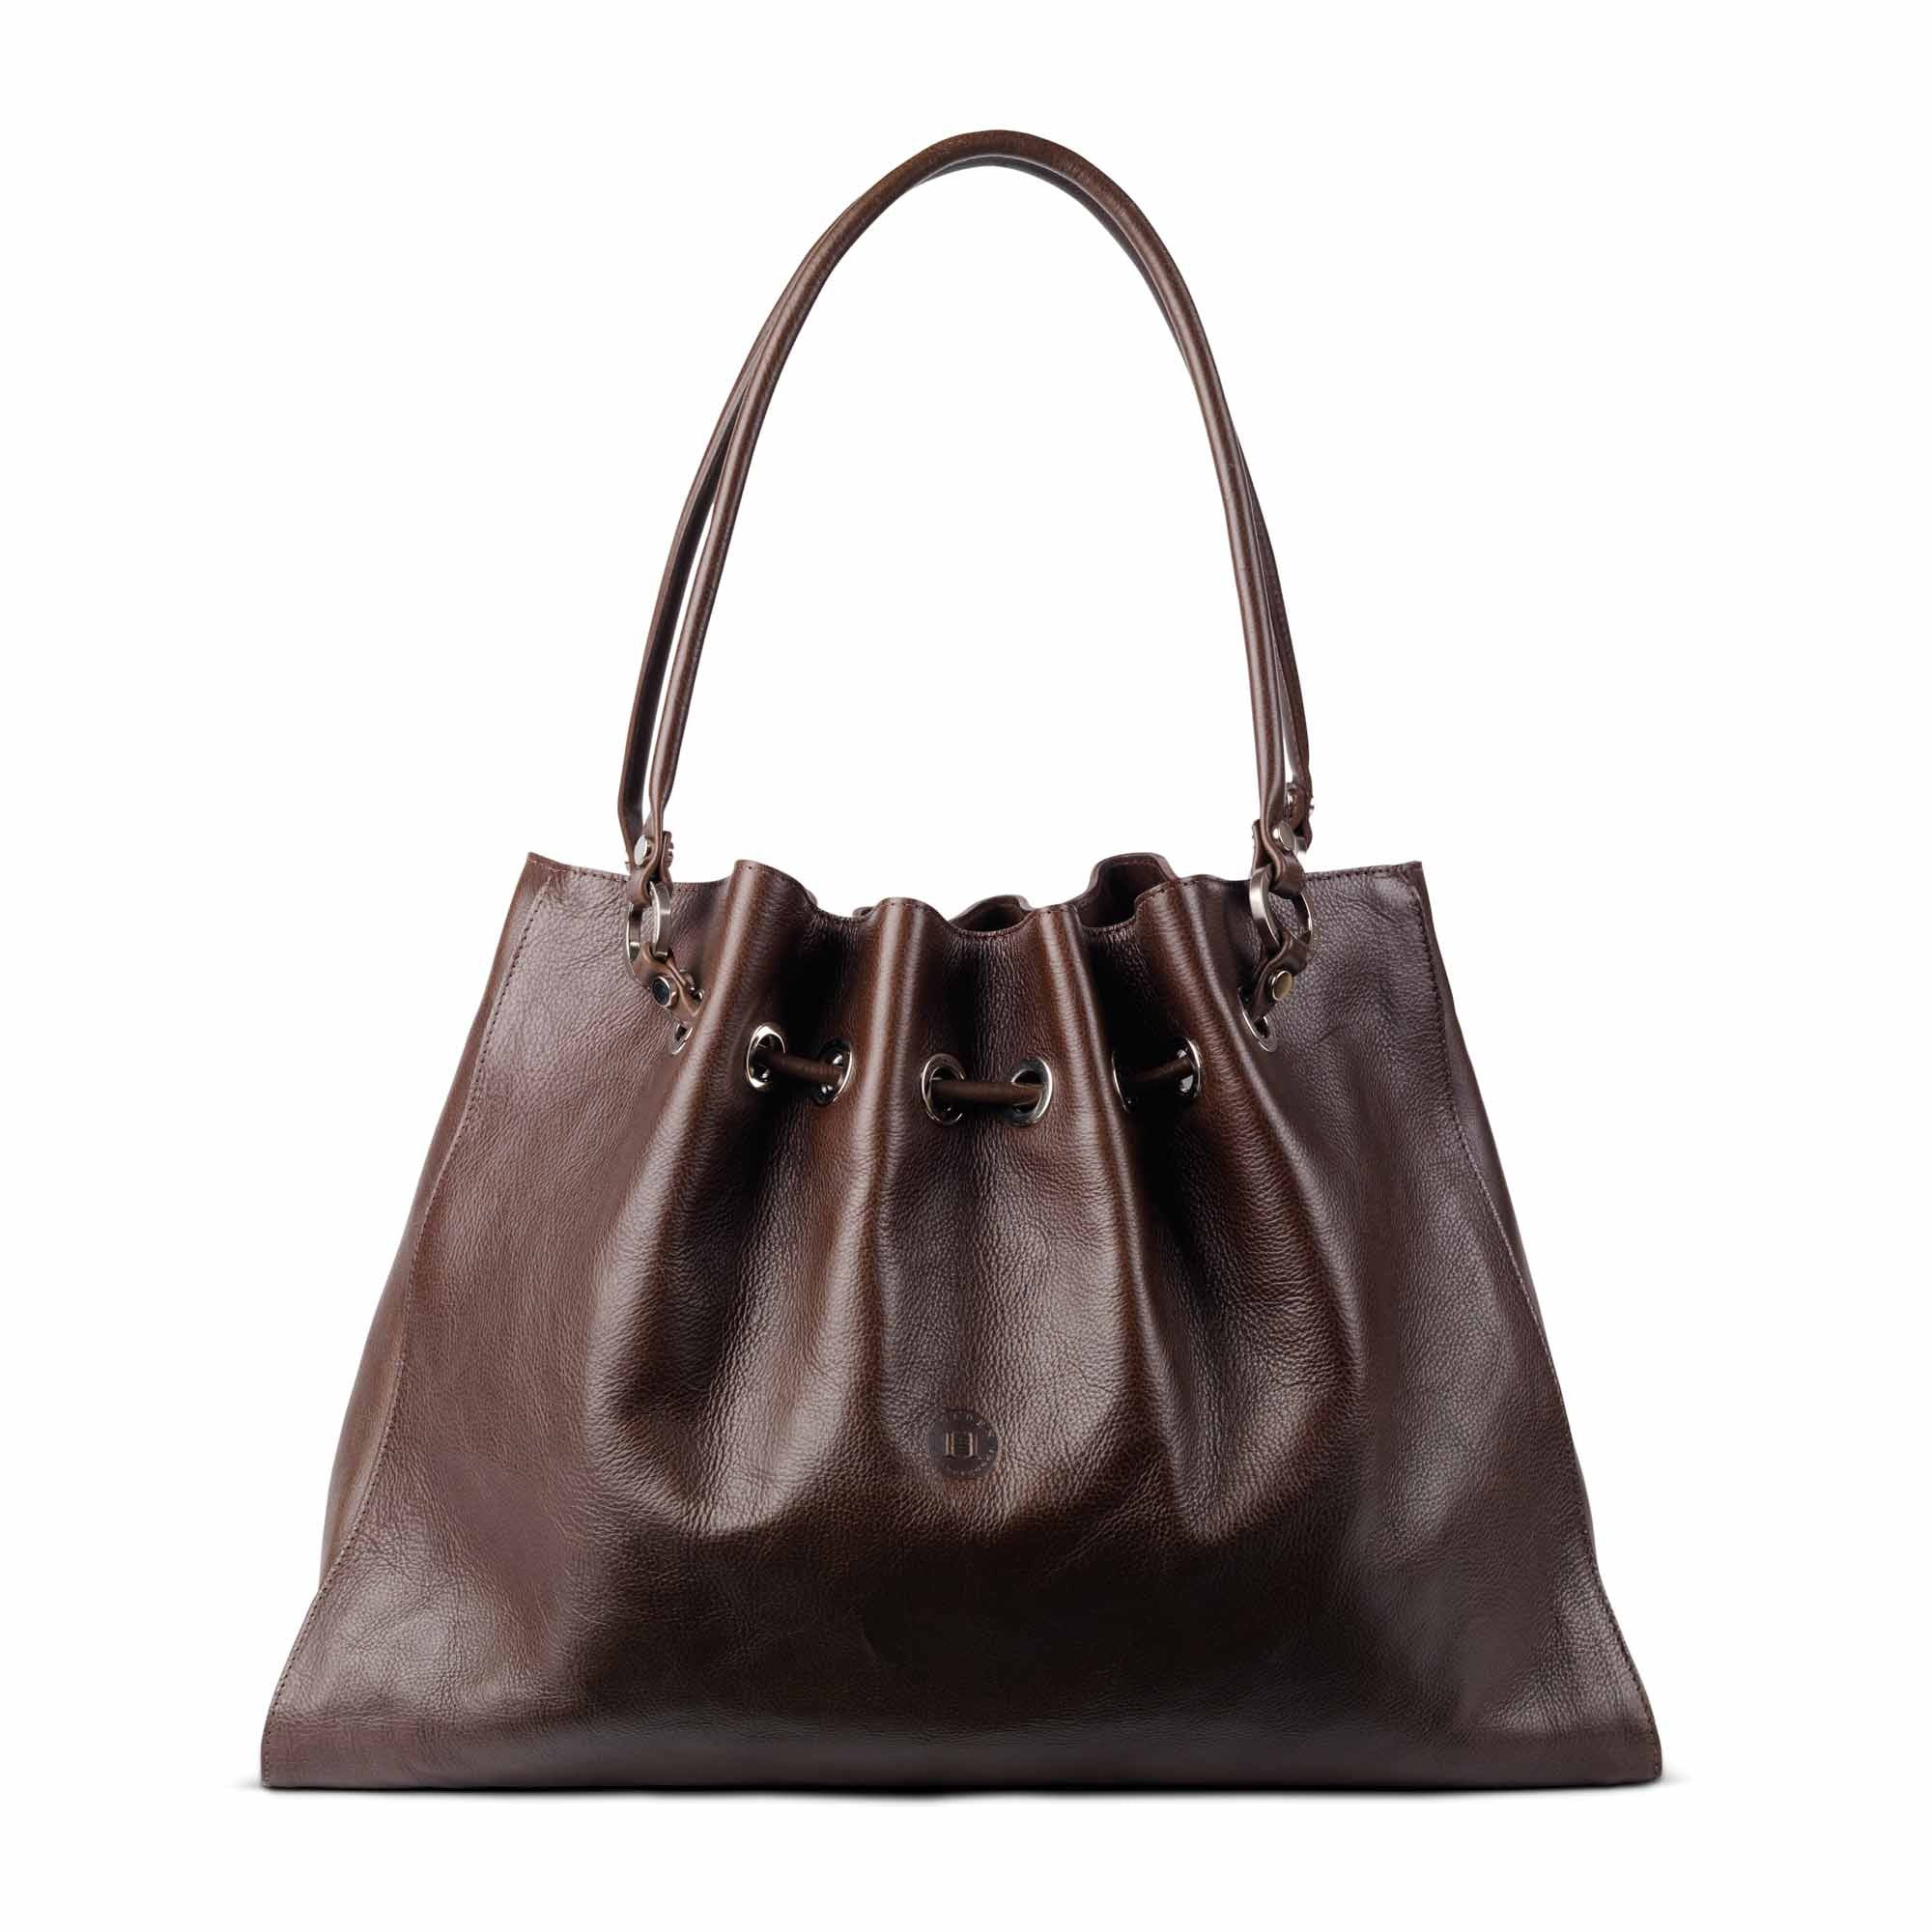 Siobhan Large Leather Tote Brown - Holden Leathergoods, leather bags handmade in Ireland